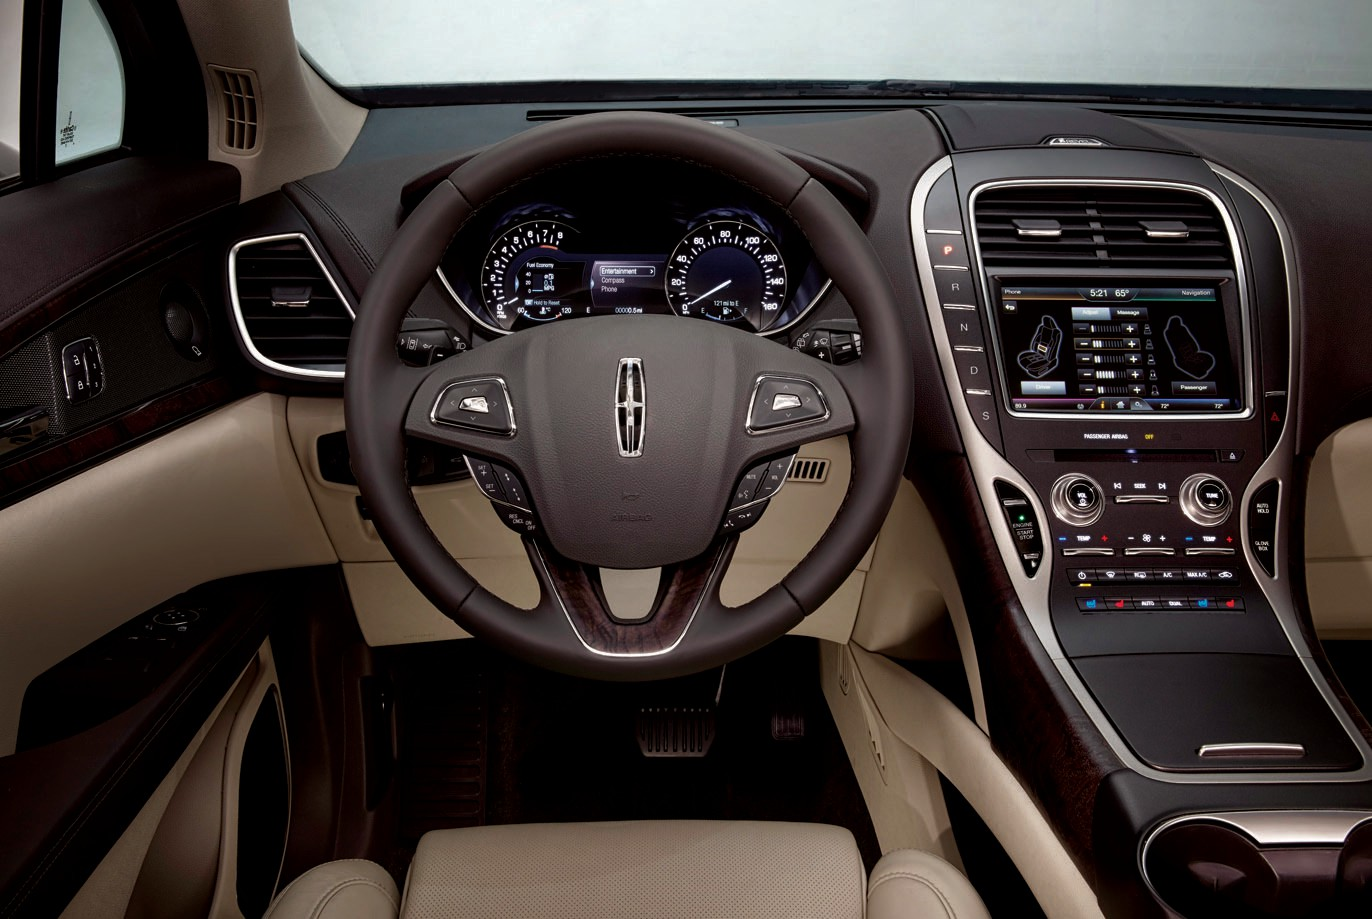 The 2016 Lincoln MKX is luxurious, inside and out.